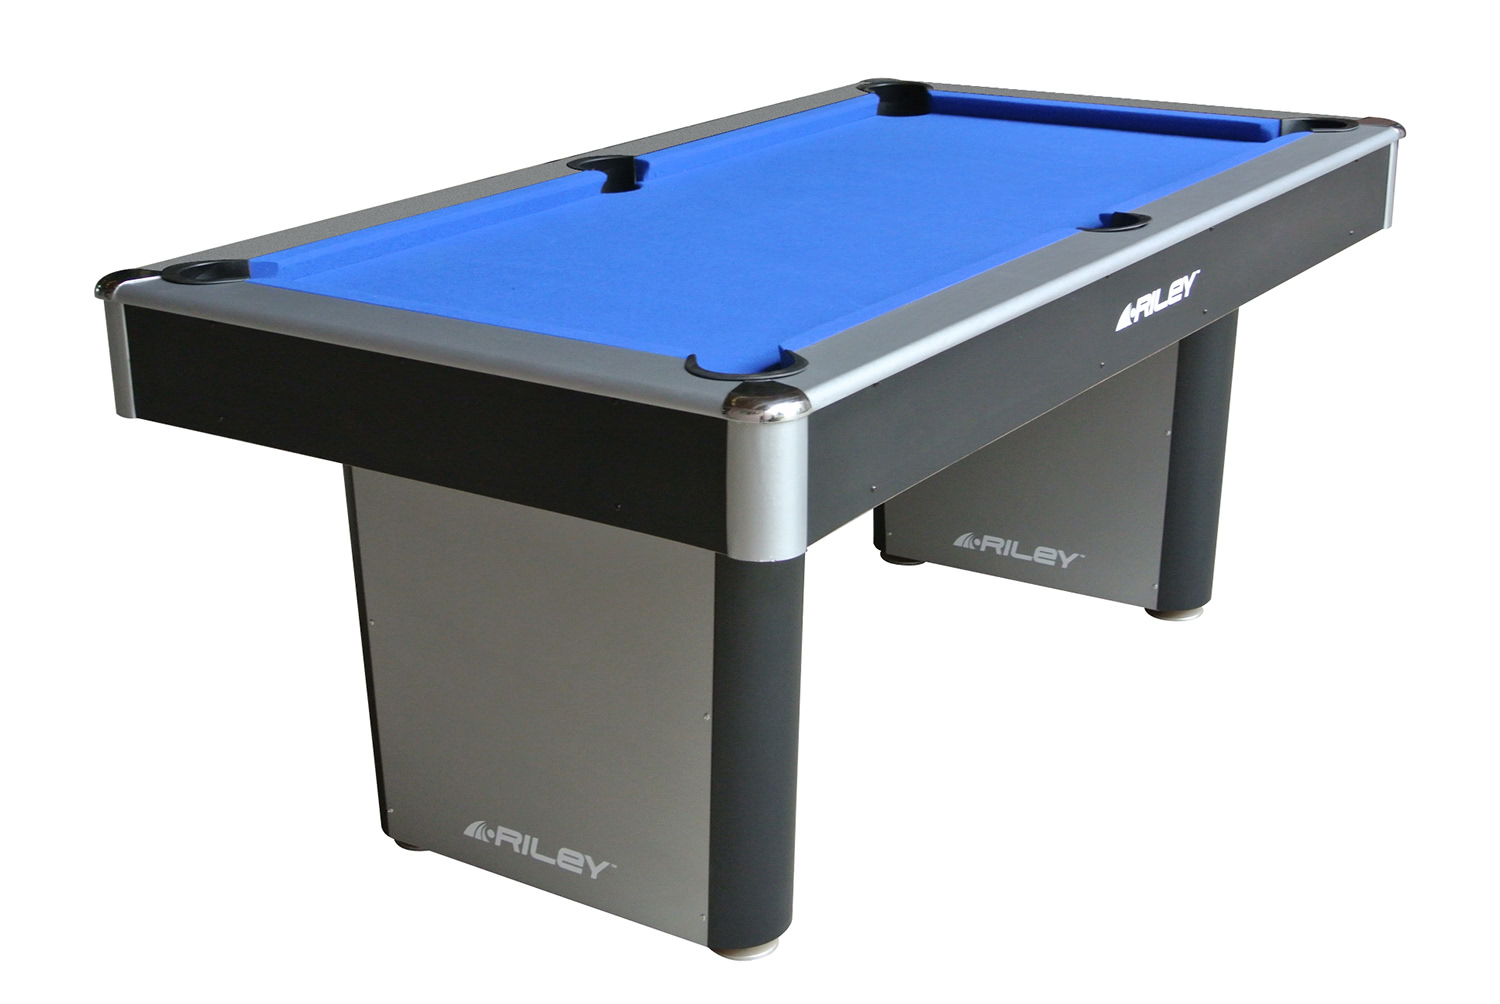 Riley Pool Table JLC Liberty Games - Six foot pool table